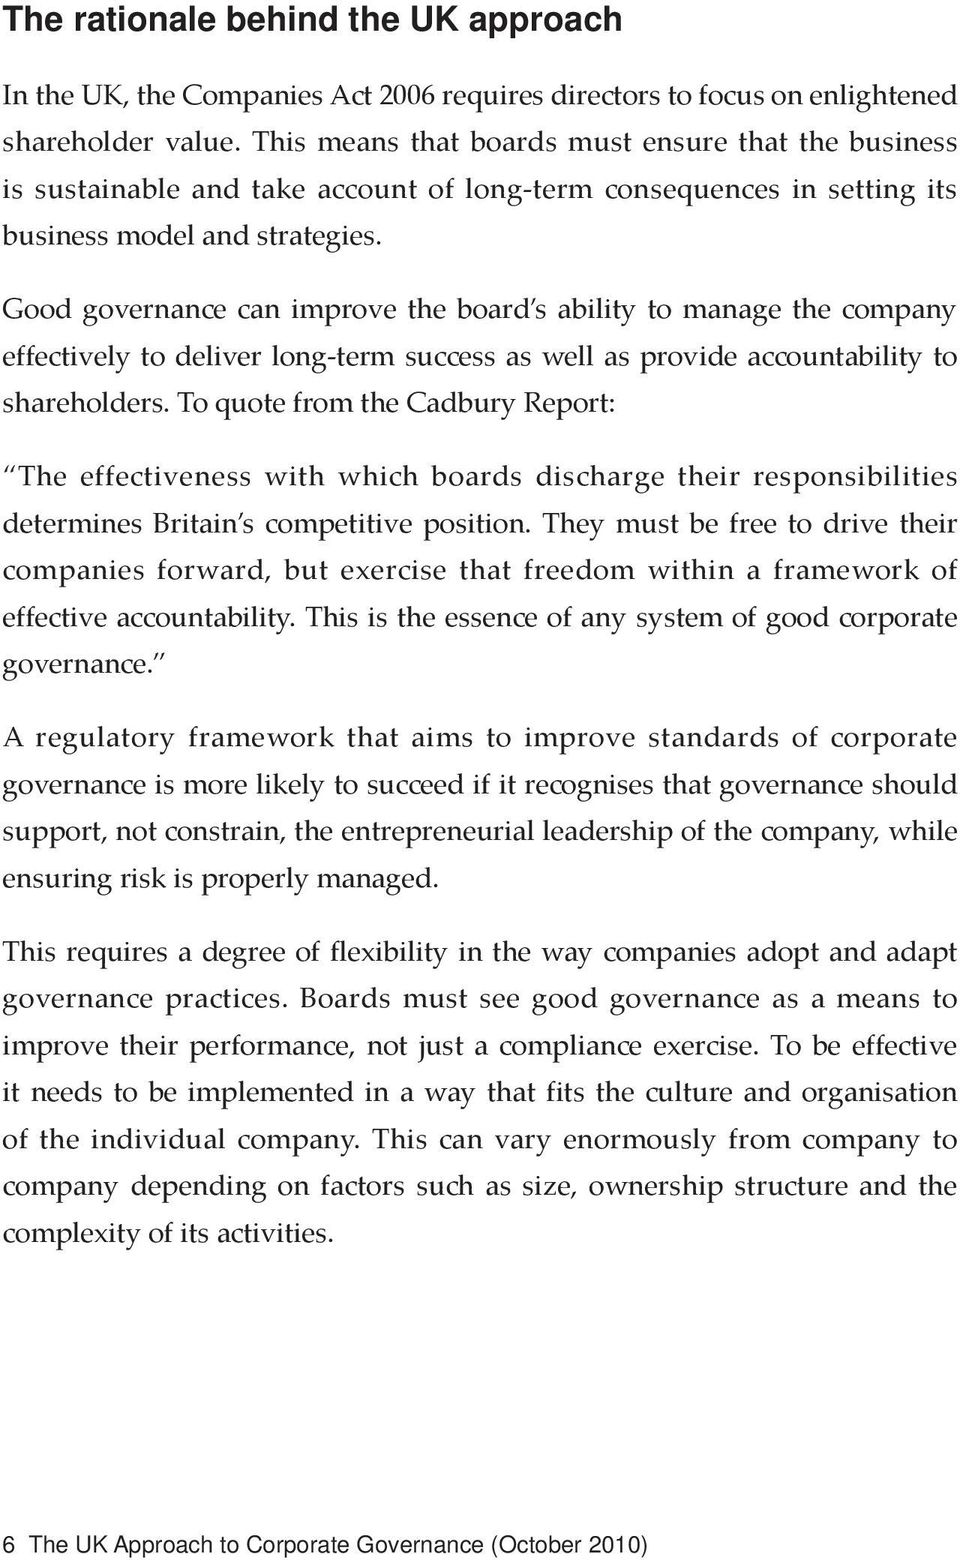 Good governance can improve the board s ability to manage the company effectively to deliver long-term success as well as provide accountability to shareholders.